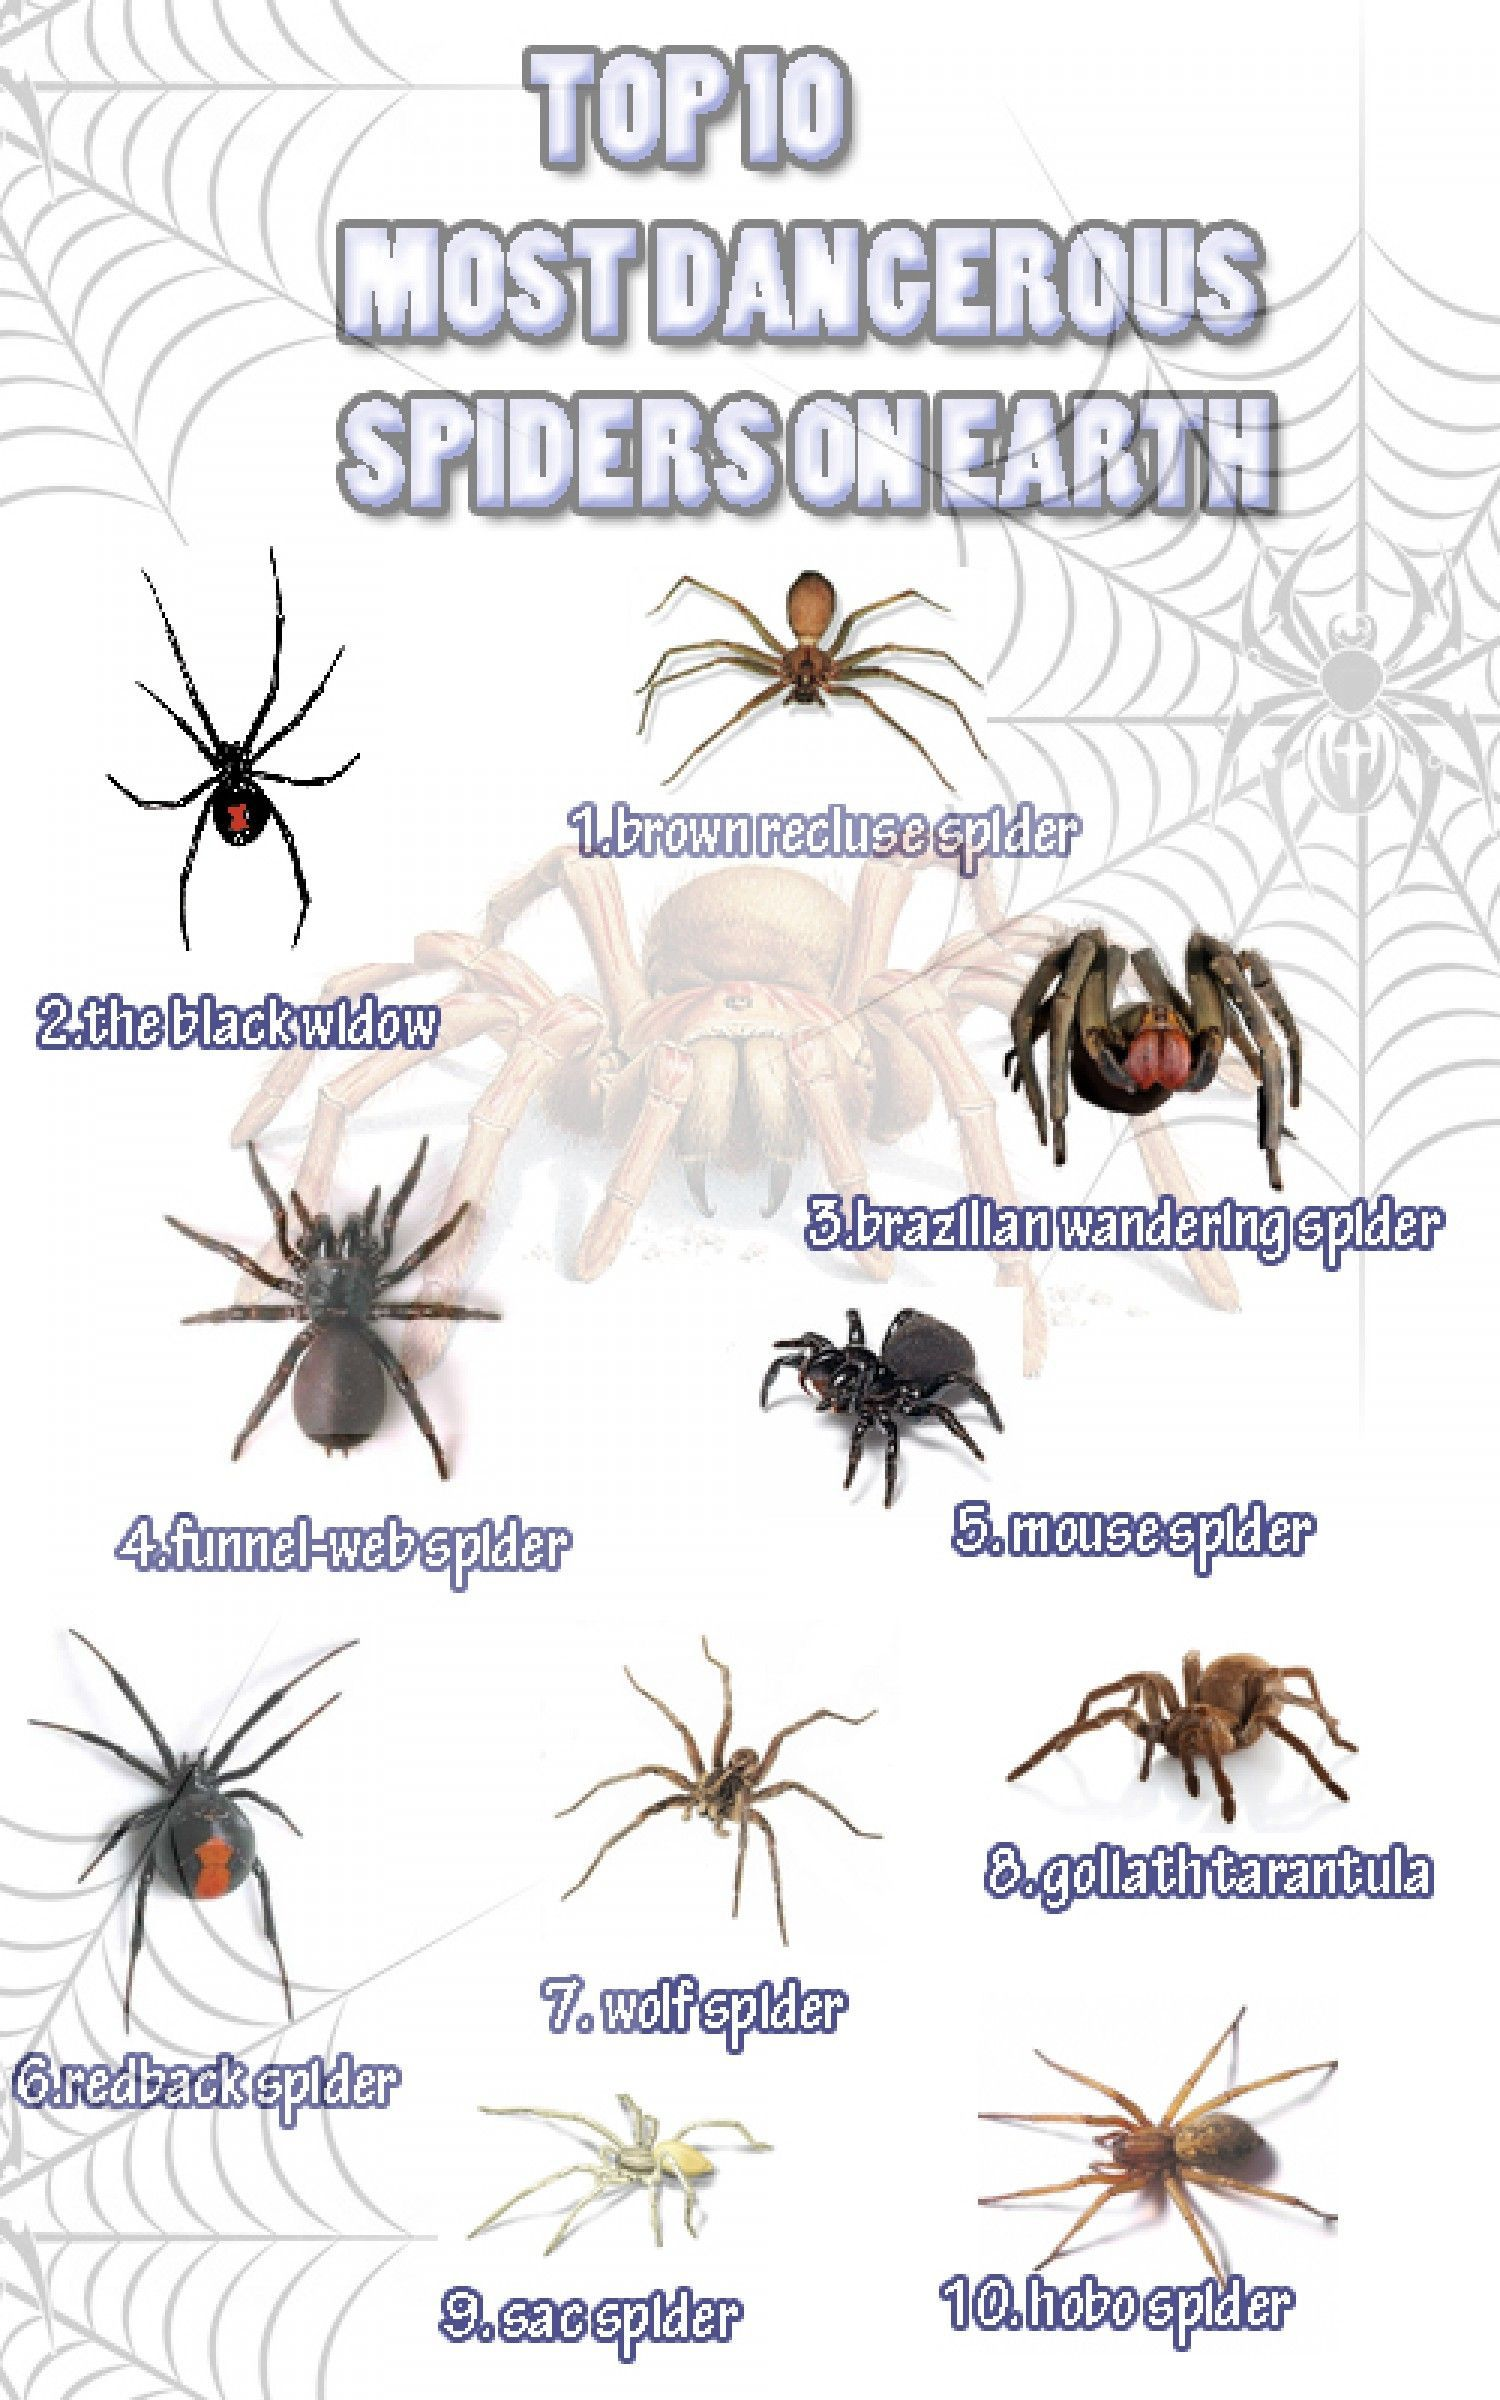 Top 10 Most Dangerous Spiders On Earth Infographic #Spiders | Other ...